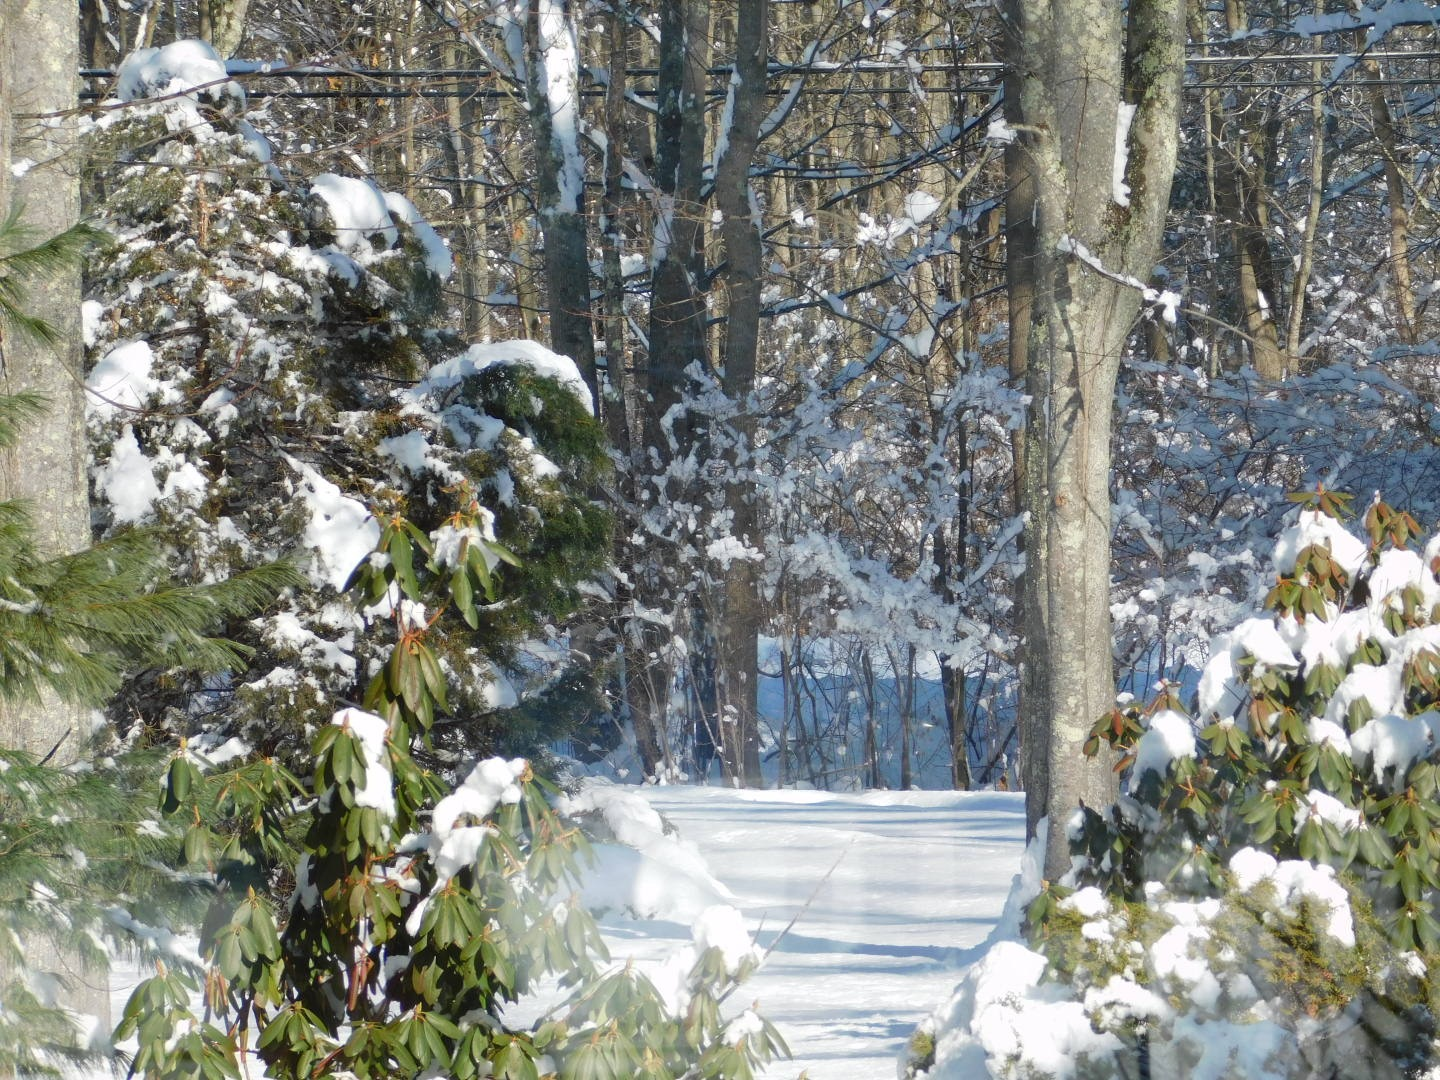 Snow Falls Again by Stacey J. Cunningham